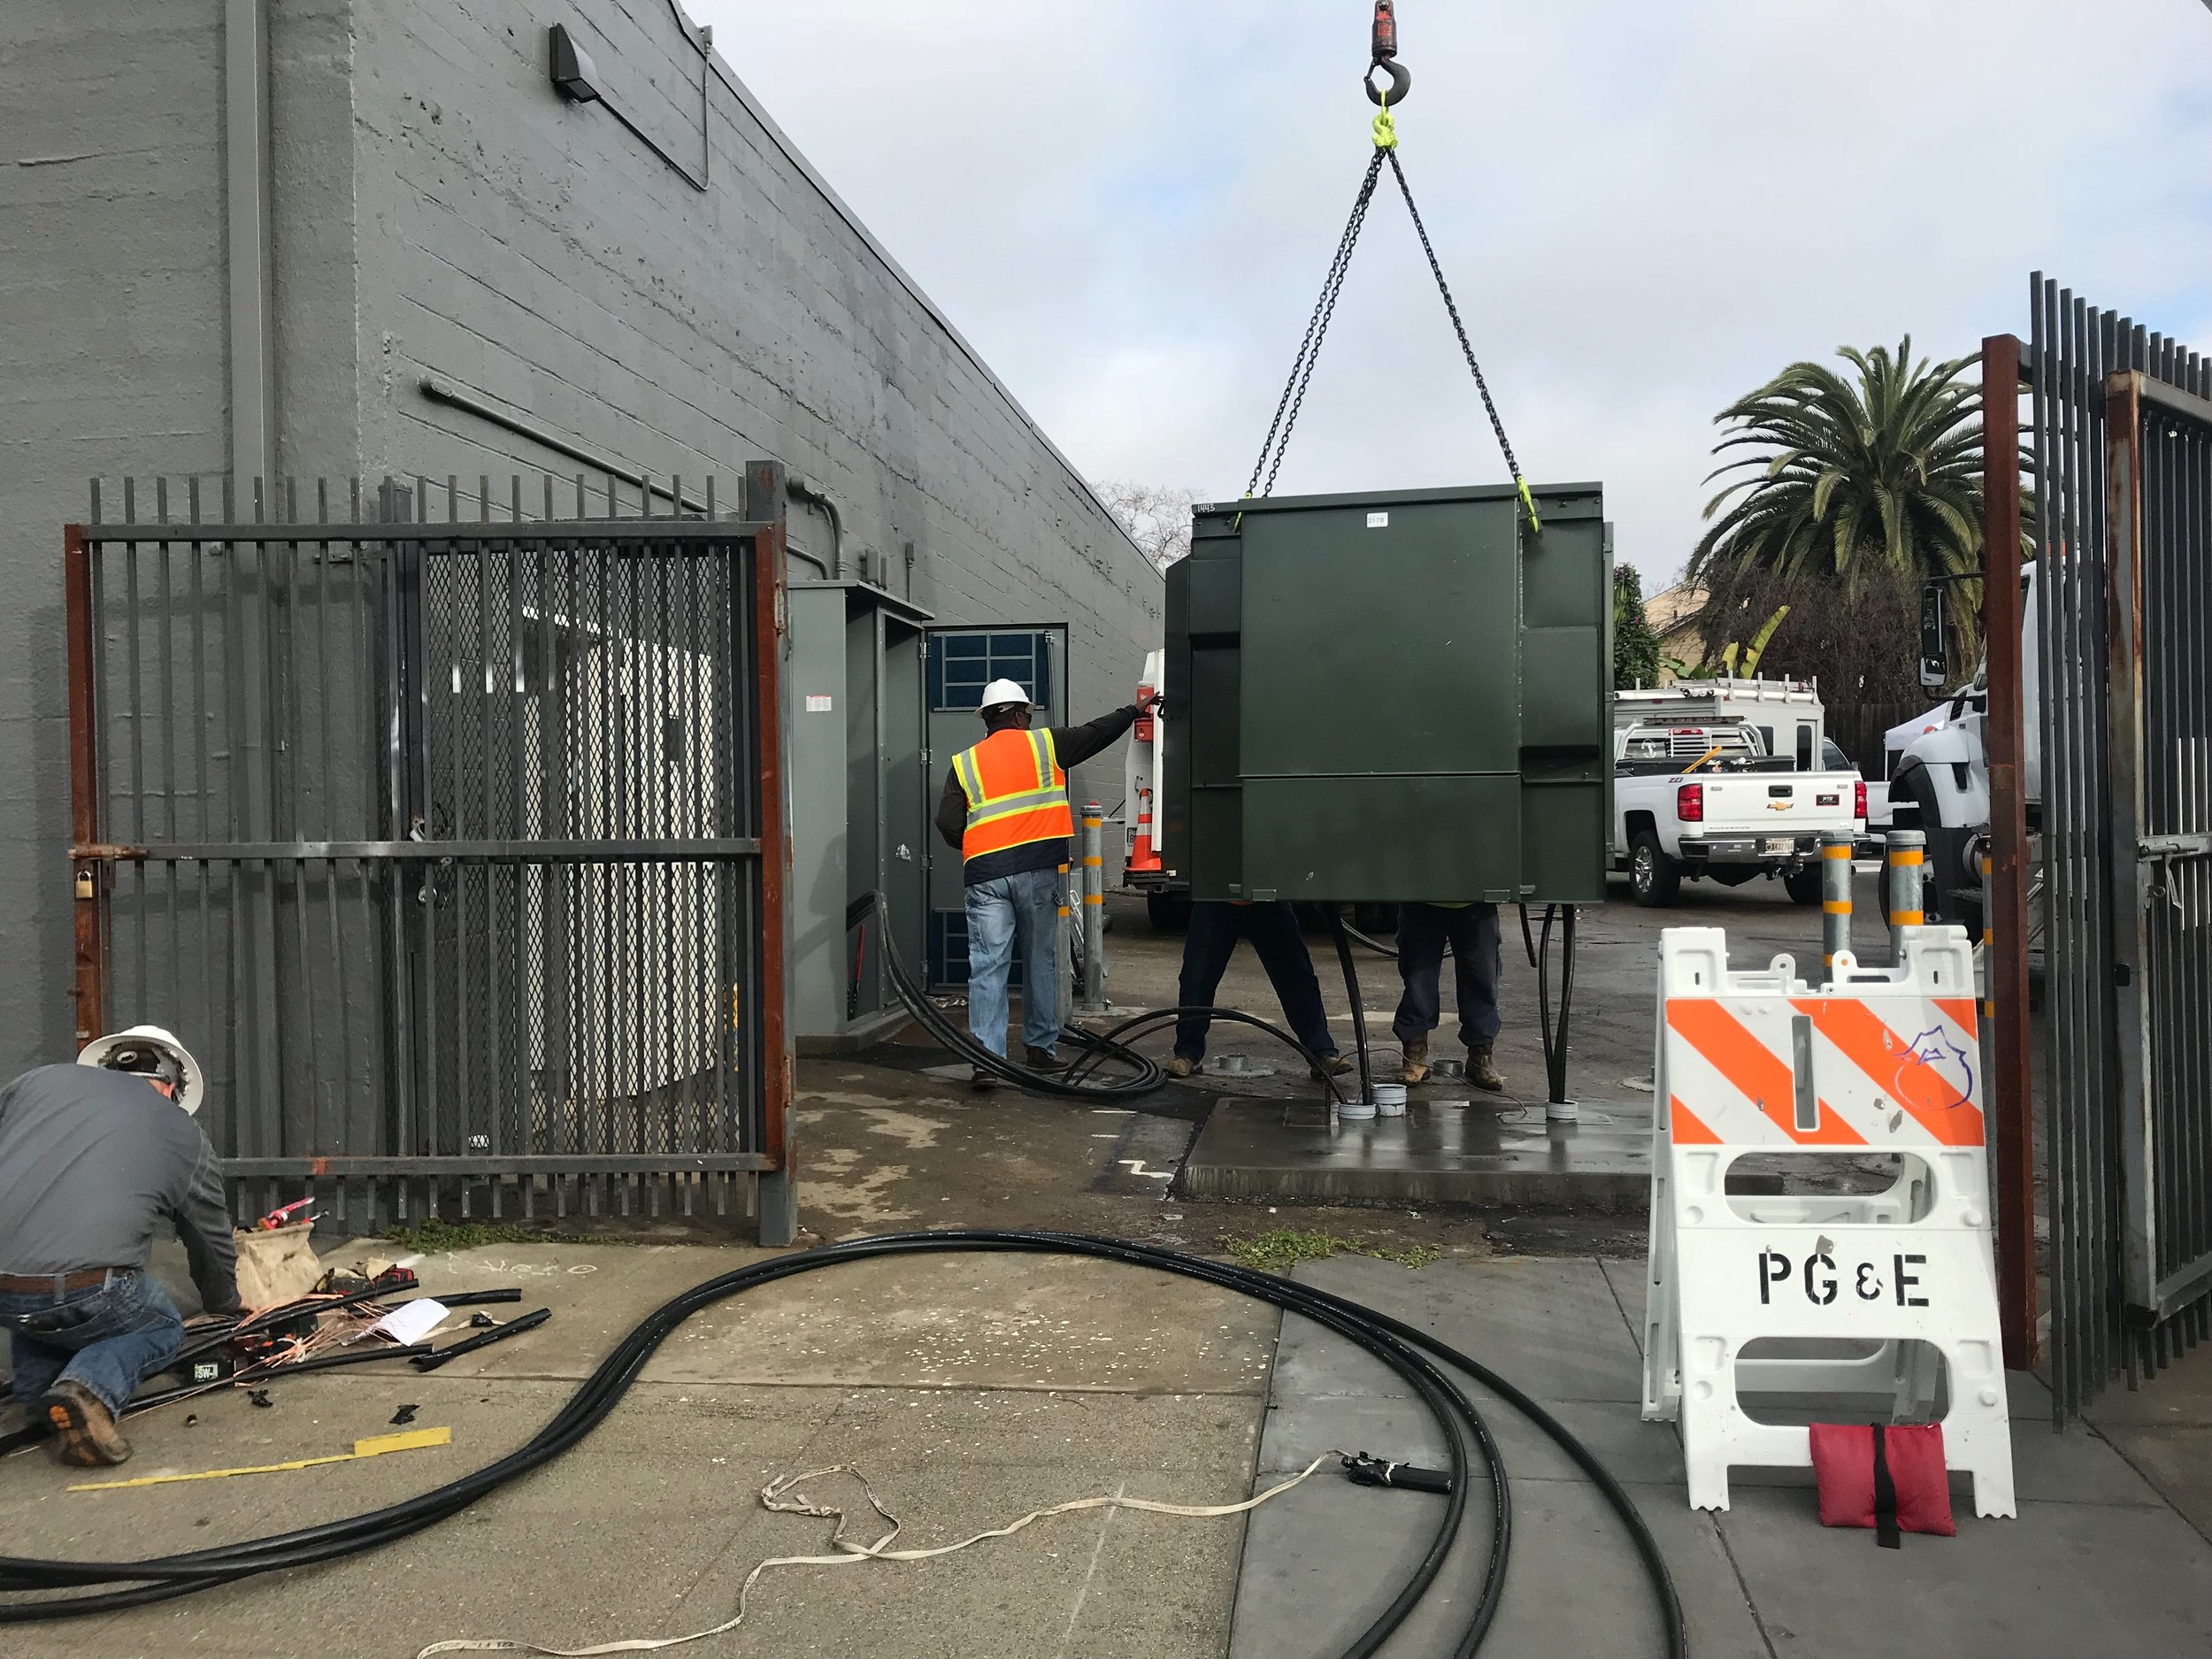 dropping the Big power box PG&E